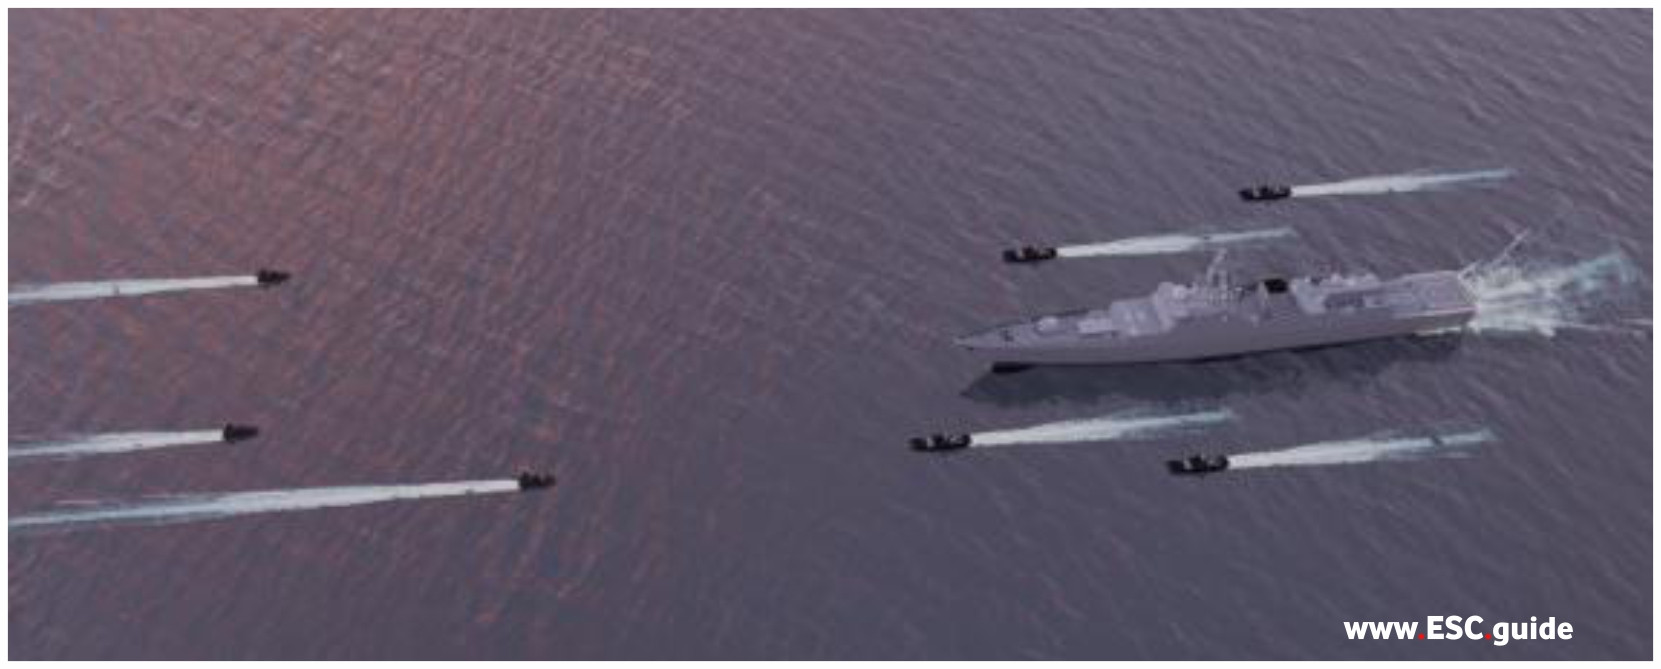 Small fast attack craft converge on frigate and MANTAS Defenders.